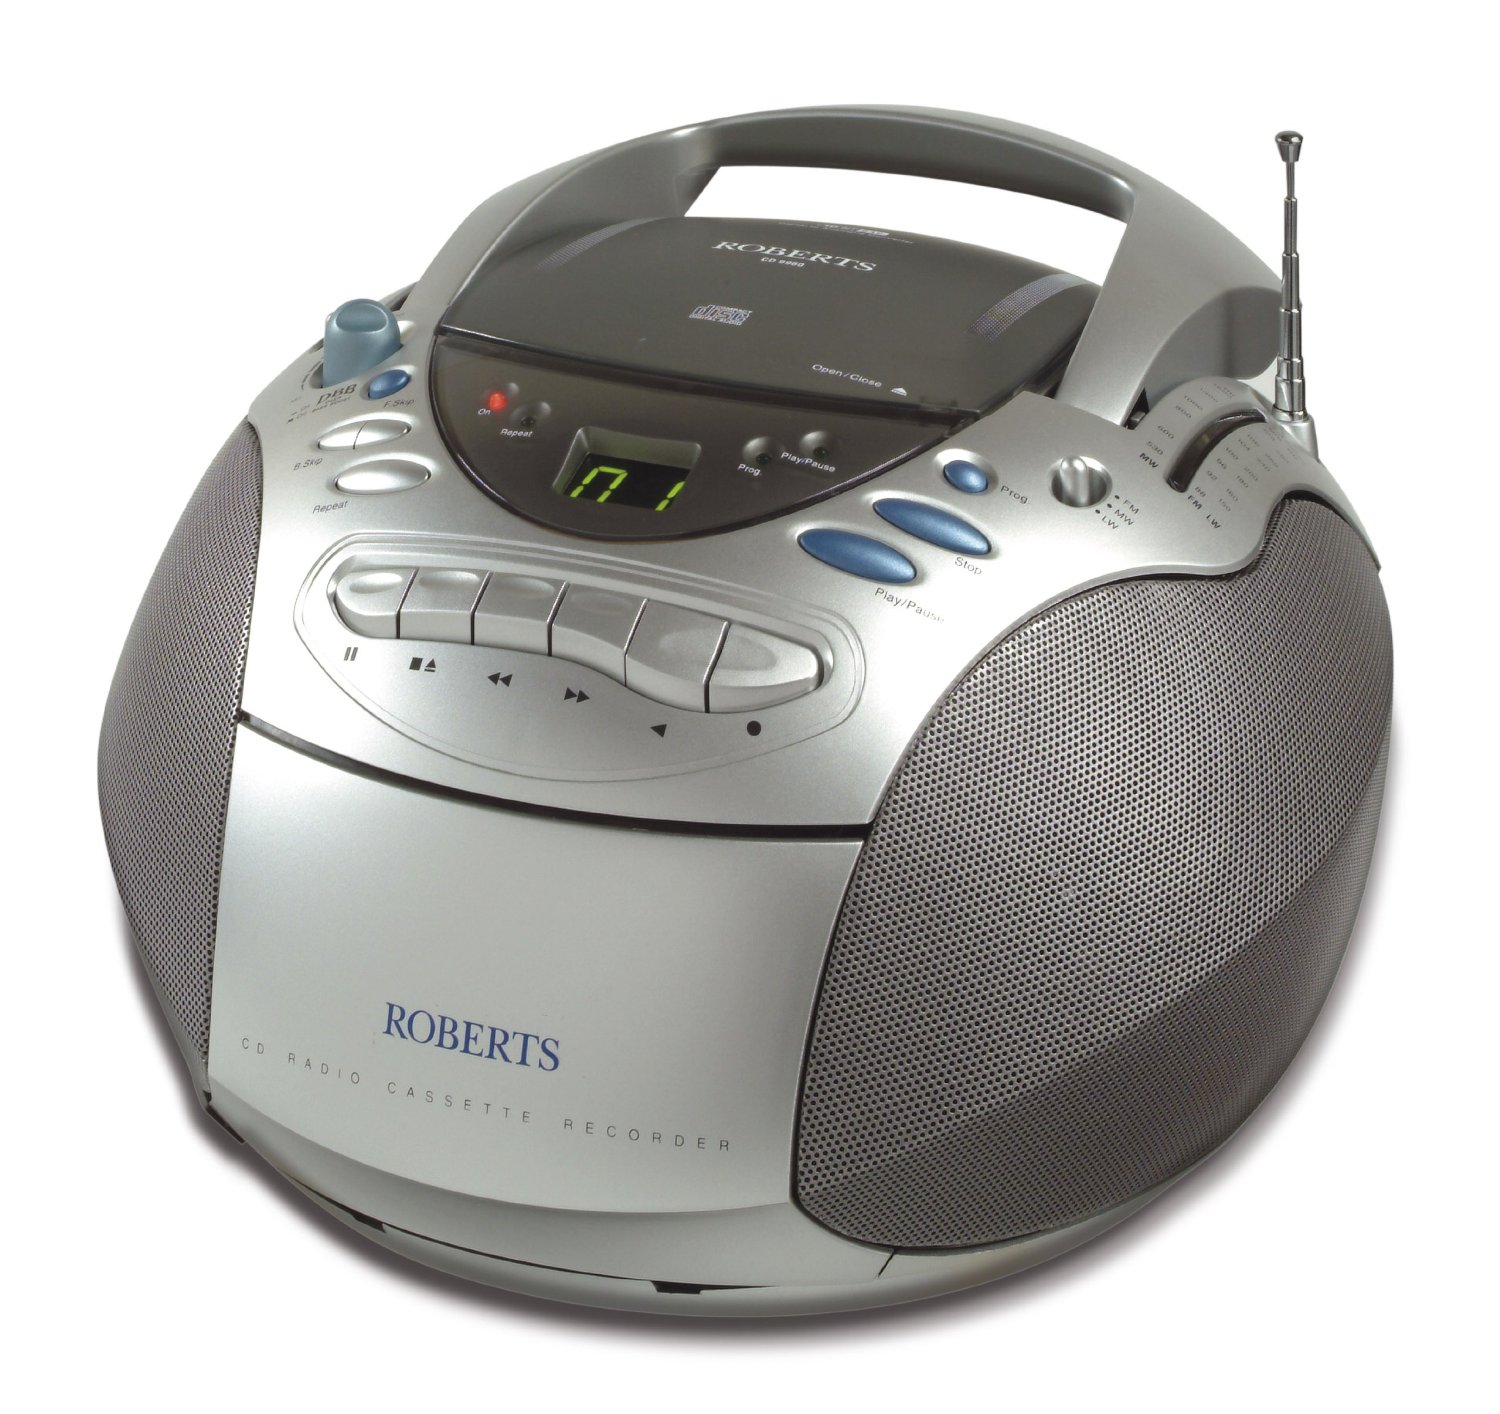 roberts cd9960 cd fm mw lw radio cassette player ebay. Black Bedroom Furniture Sets. Home Design Ideas